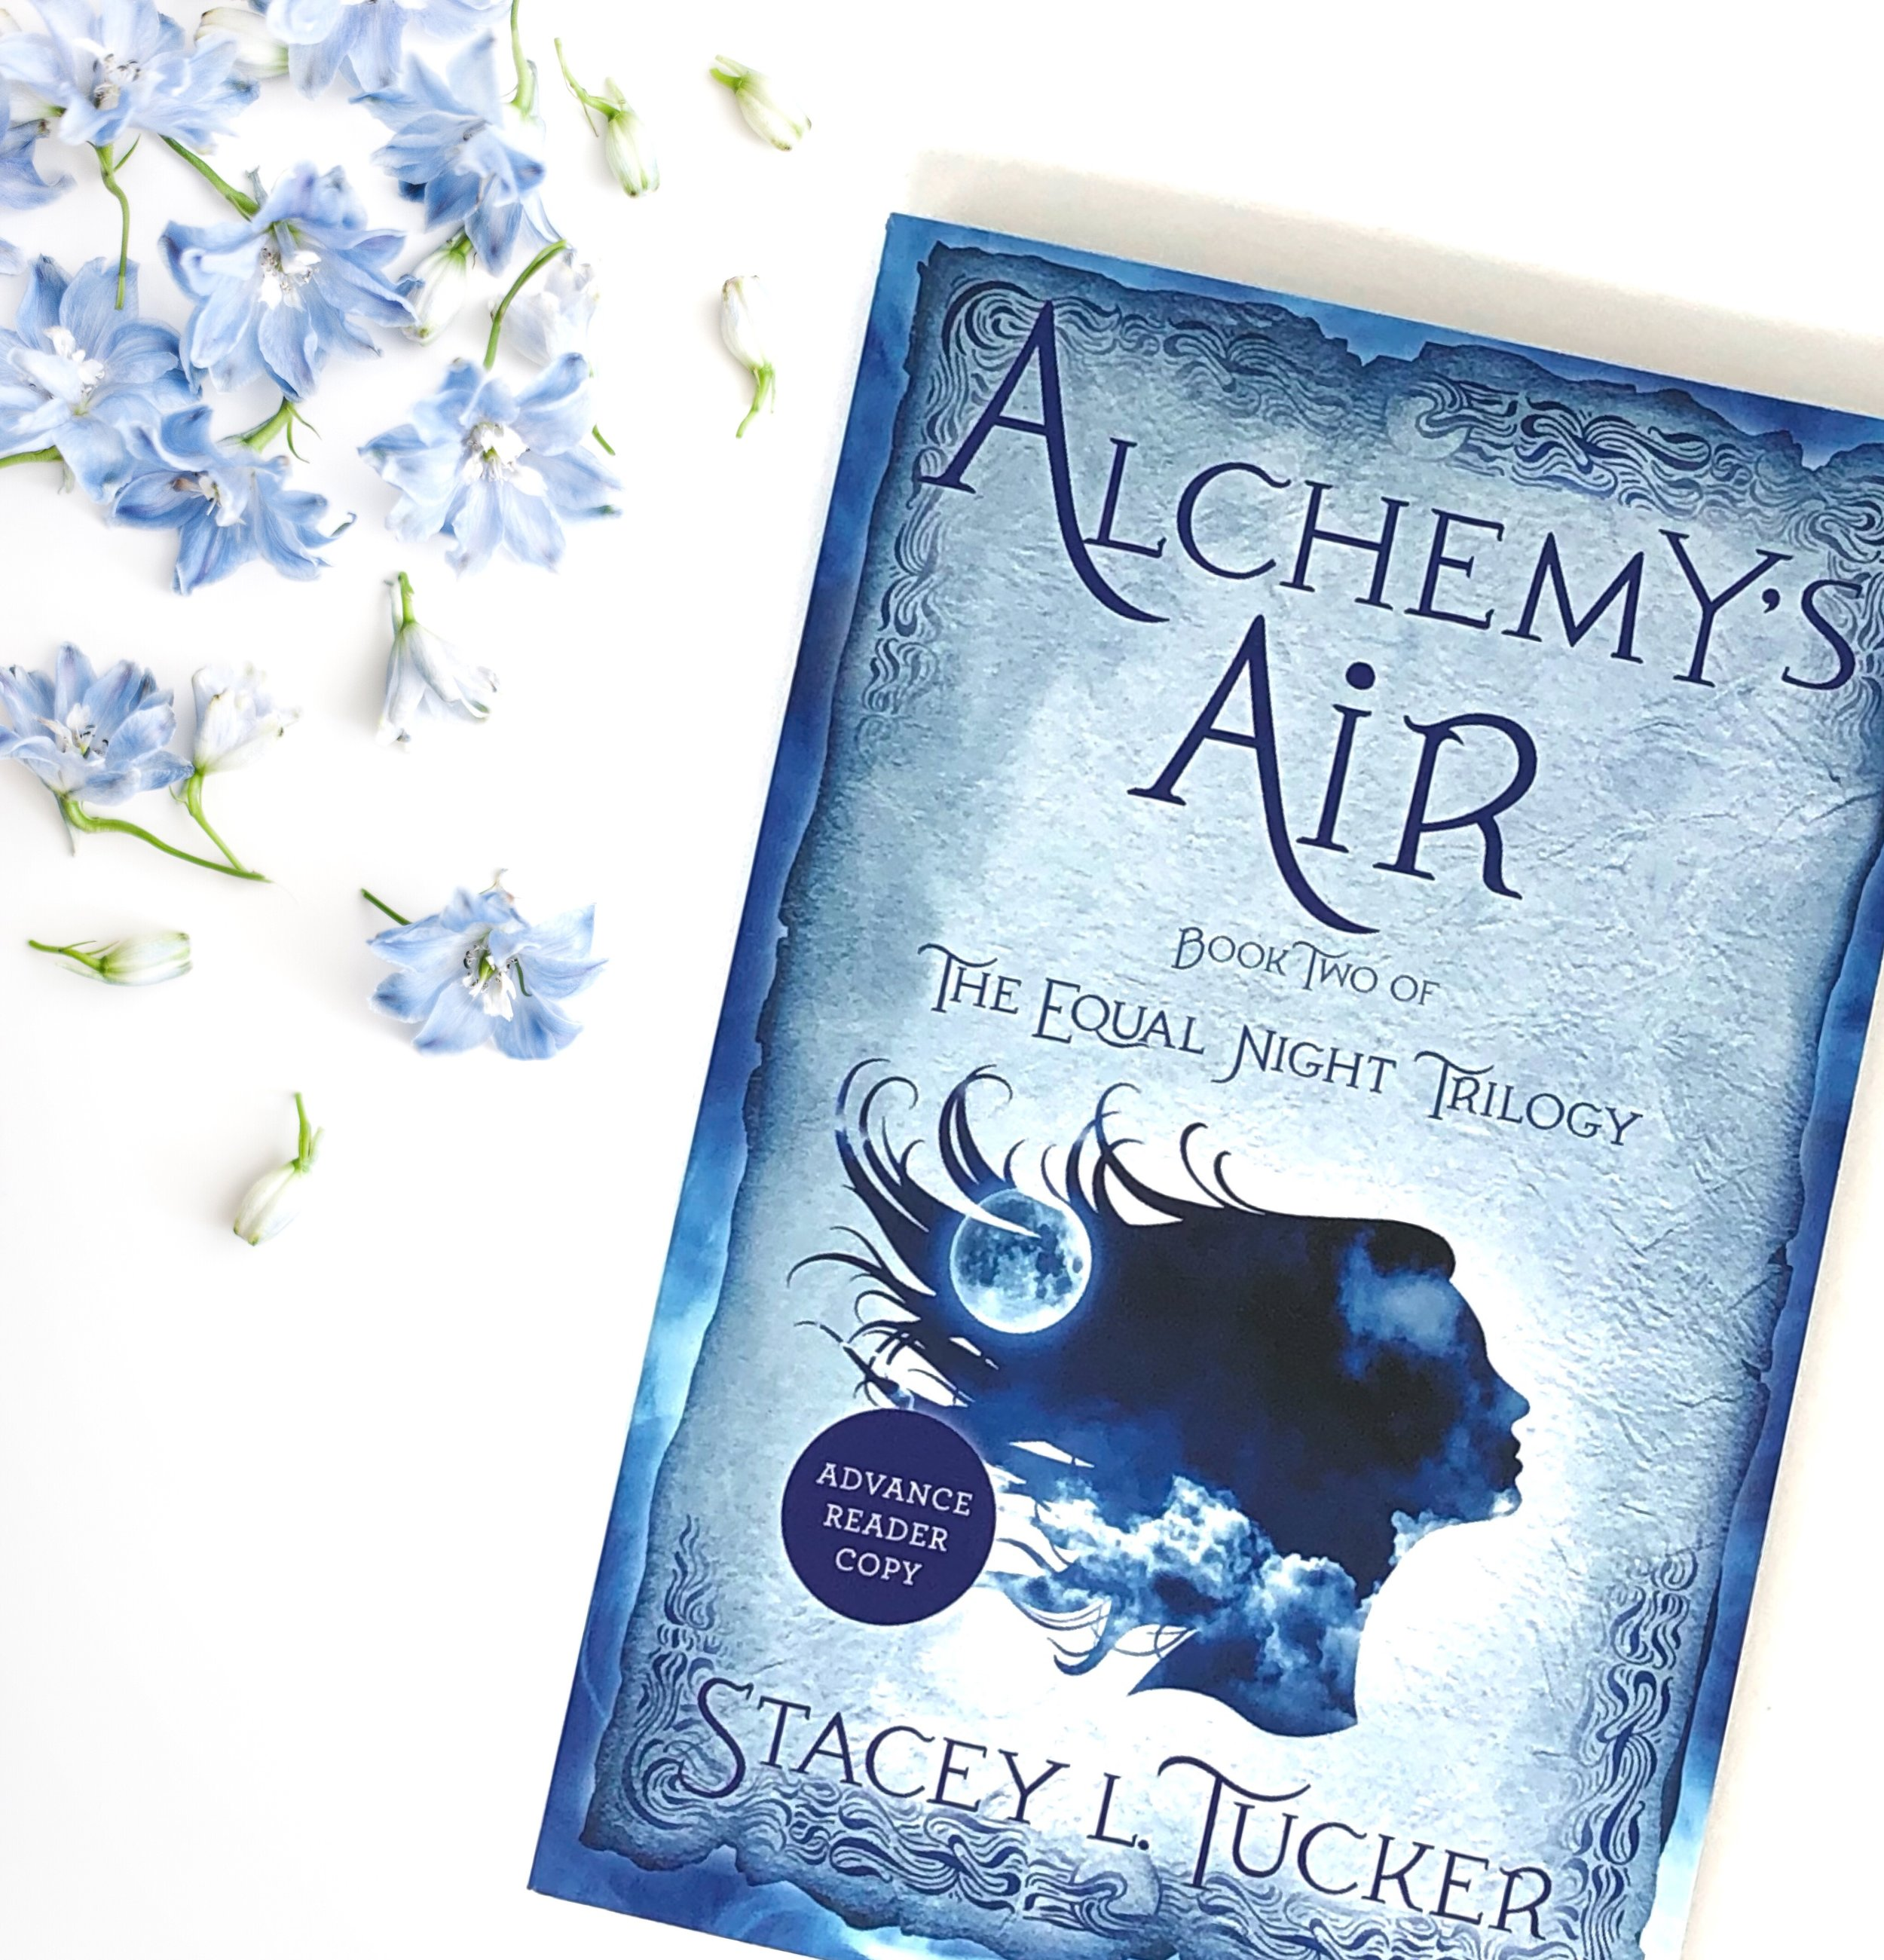 Alchemy's Air by Stacey L. Tucker. Review by Jessica Mack on Latest Book Crush